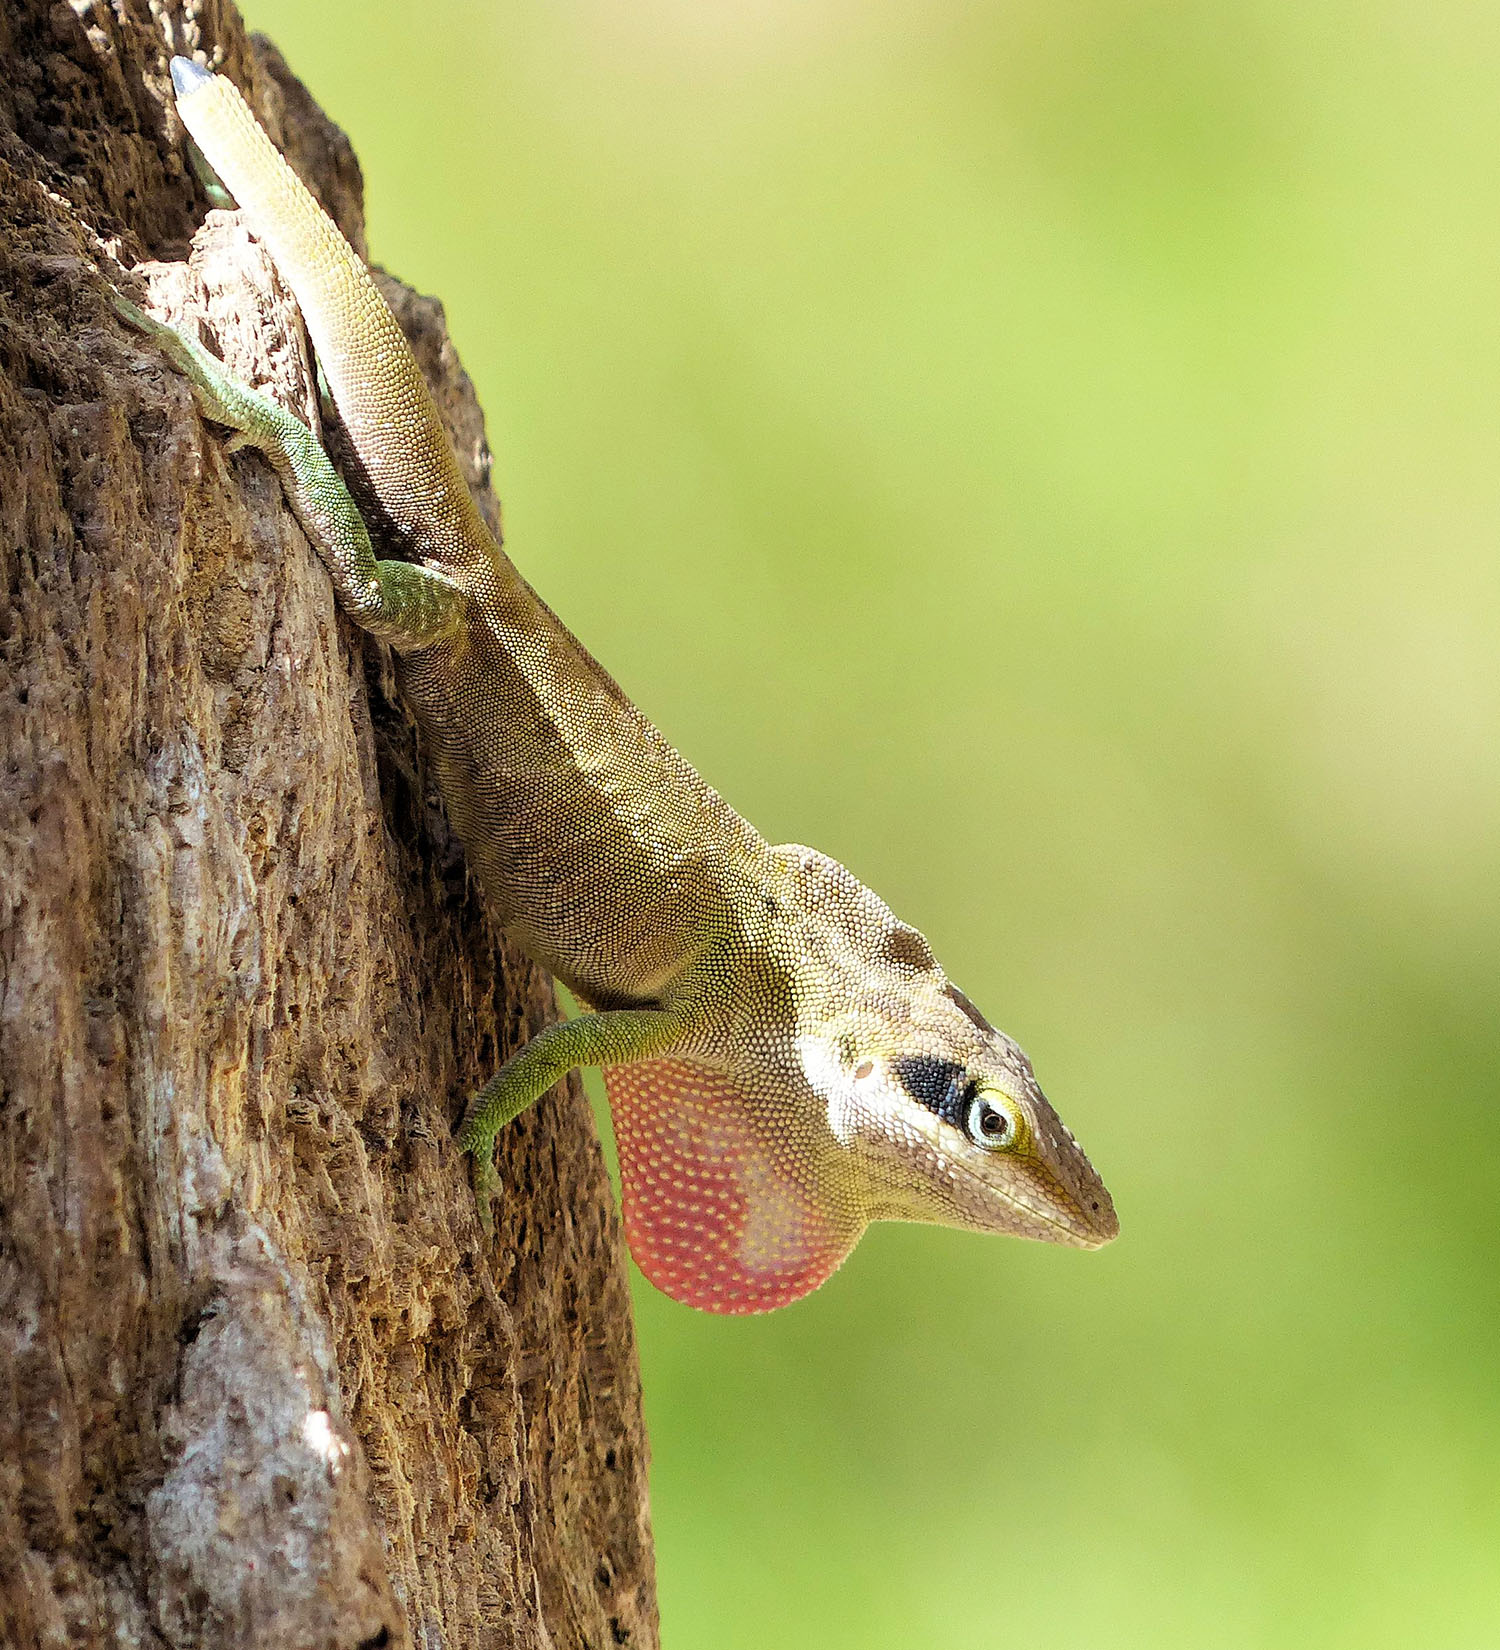 Anole in full threat display